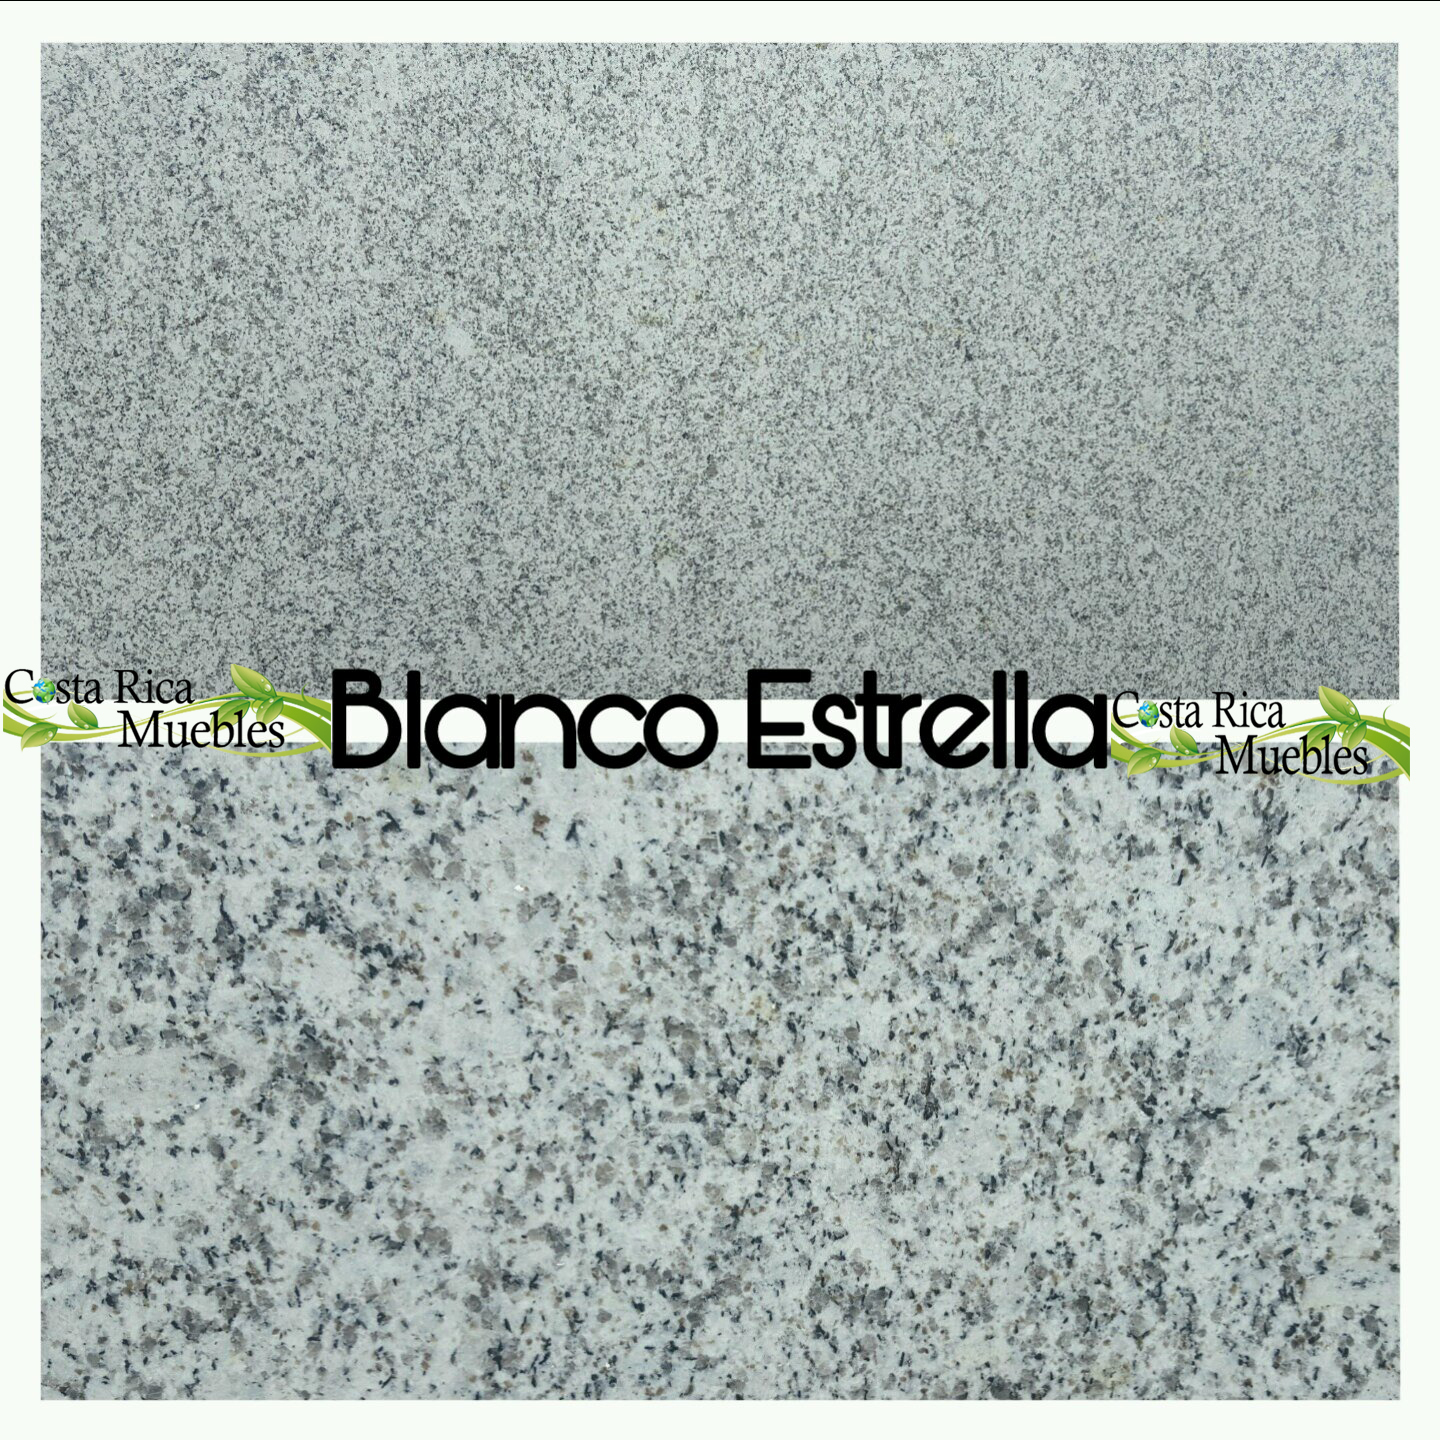 Tonos granito natural granito blanco estrella for Granito natural blanco